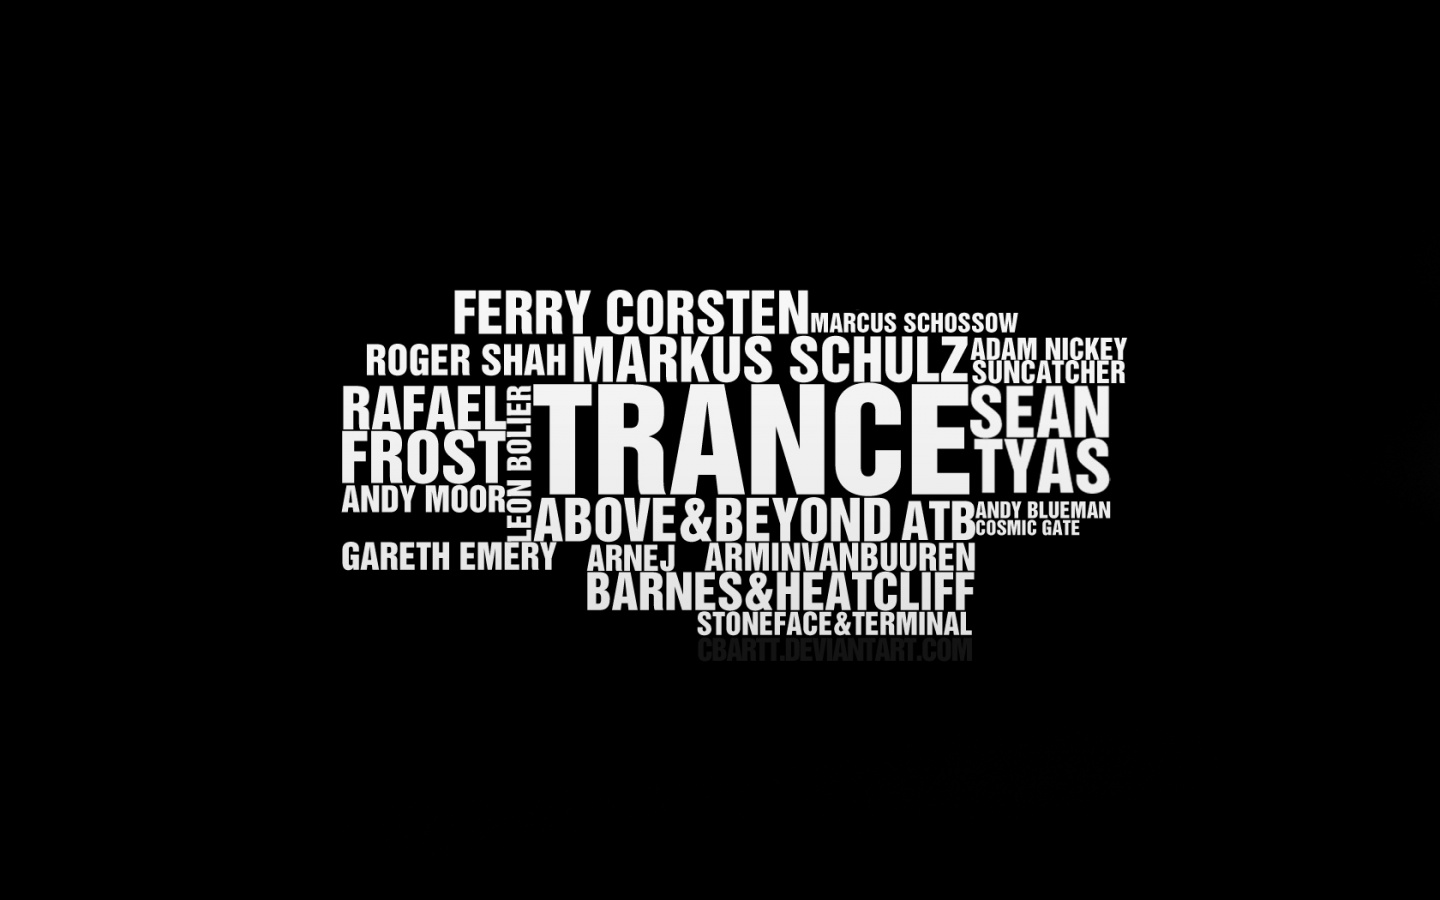 Trance wallpapers in trance we trust compilation of trance wallpapers voltagebd Image collections